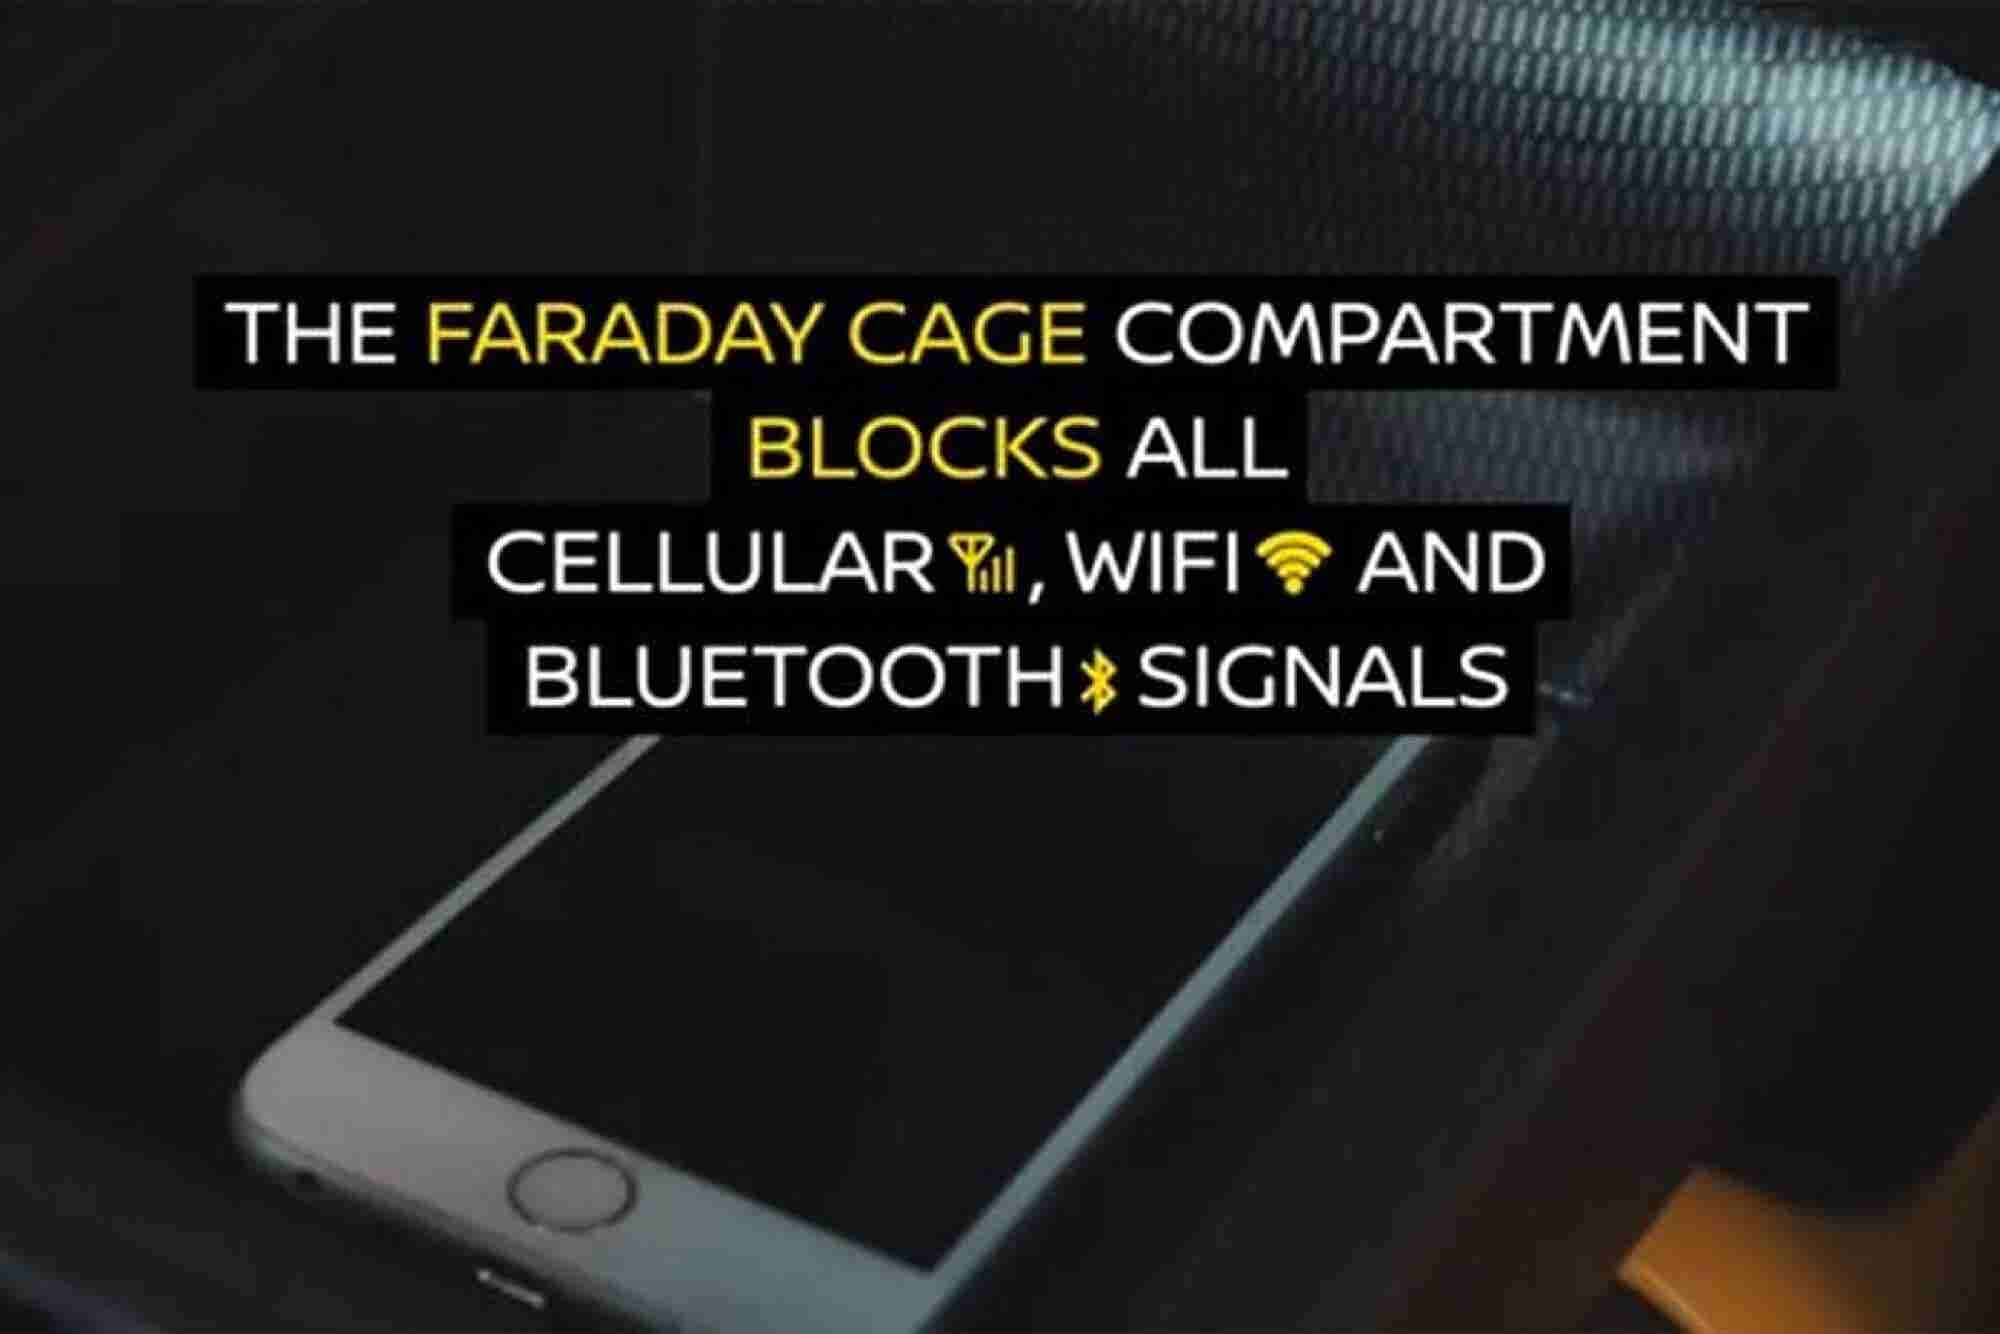 Nissan Fights Distracted Driving With Faraday Cage Armrest